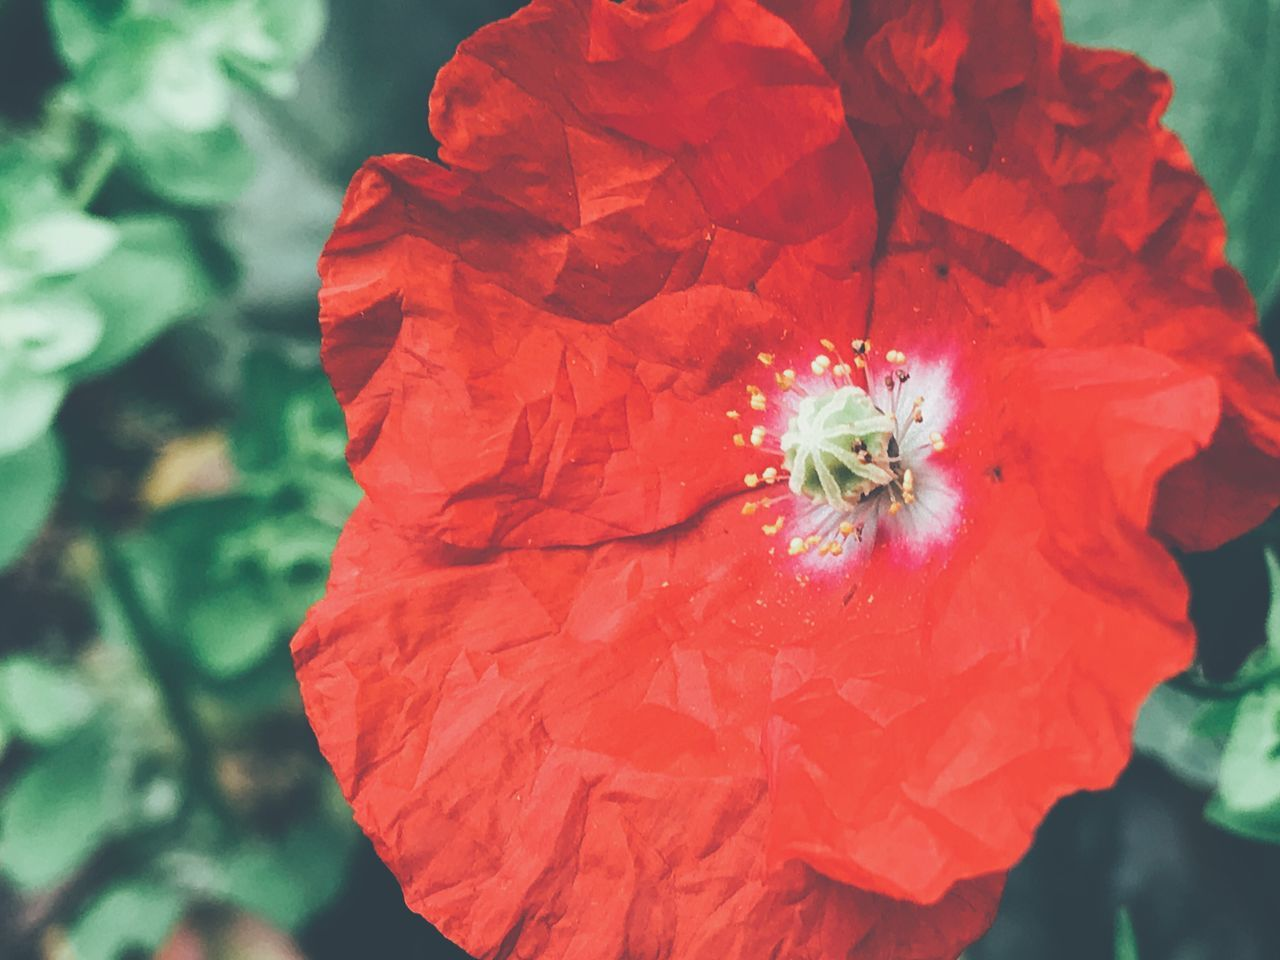 Flower Petal Flower Head Fragility Freshness Beauty In Nature Nature Growth Plant Close-up Day Blooming Outdoors Stamen No People Pollen Springtime Red Color Backgrounds Poppy Flower Beauty In Nature Poppy Poppy Flowers Red Flower Nature